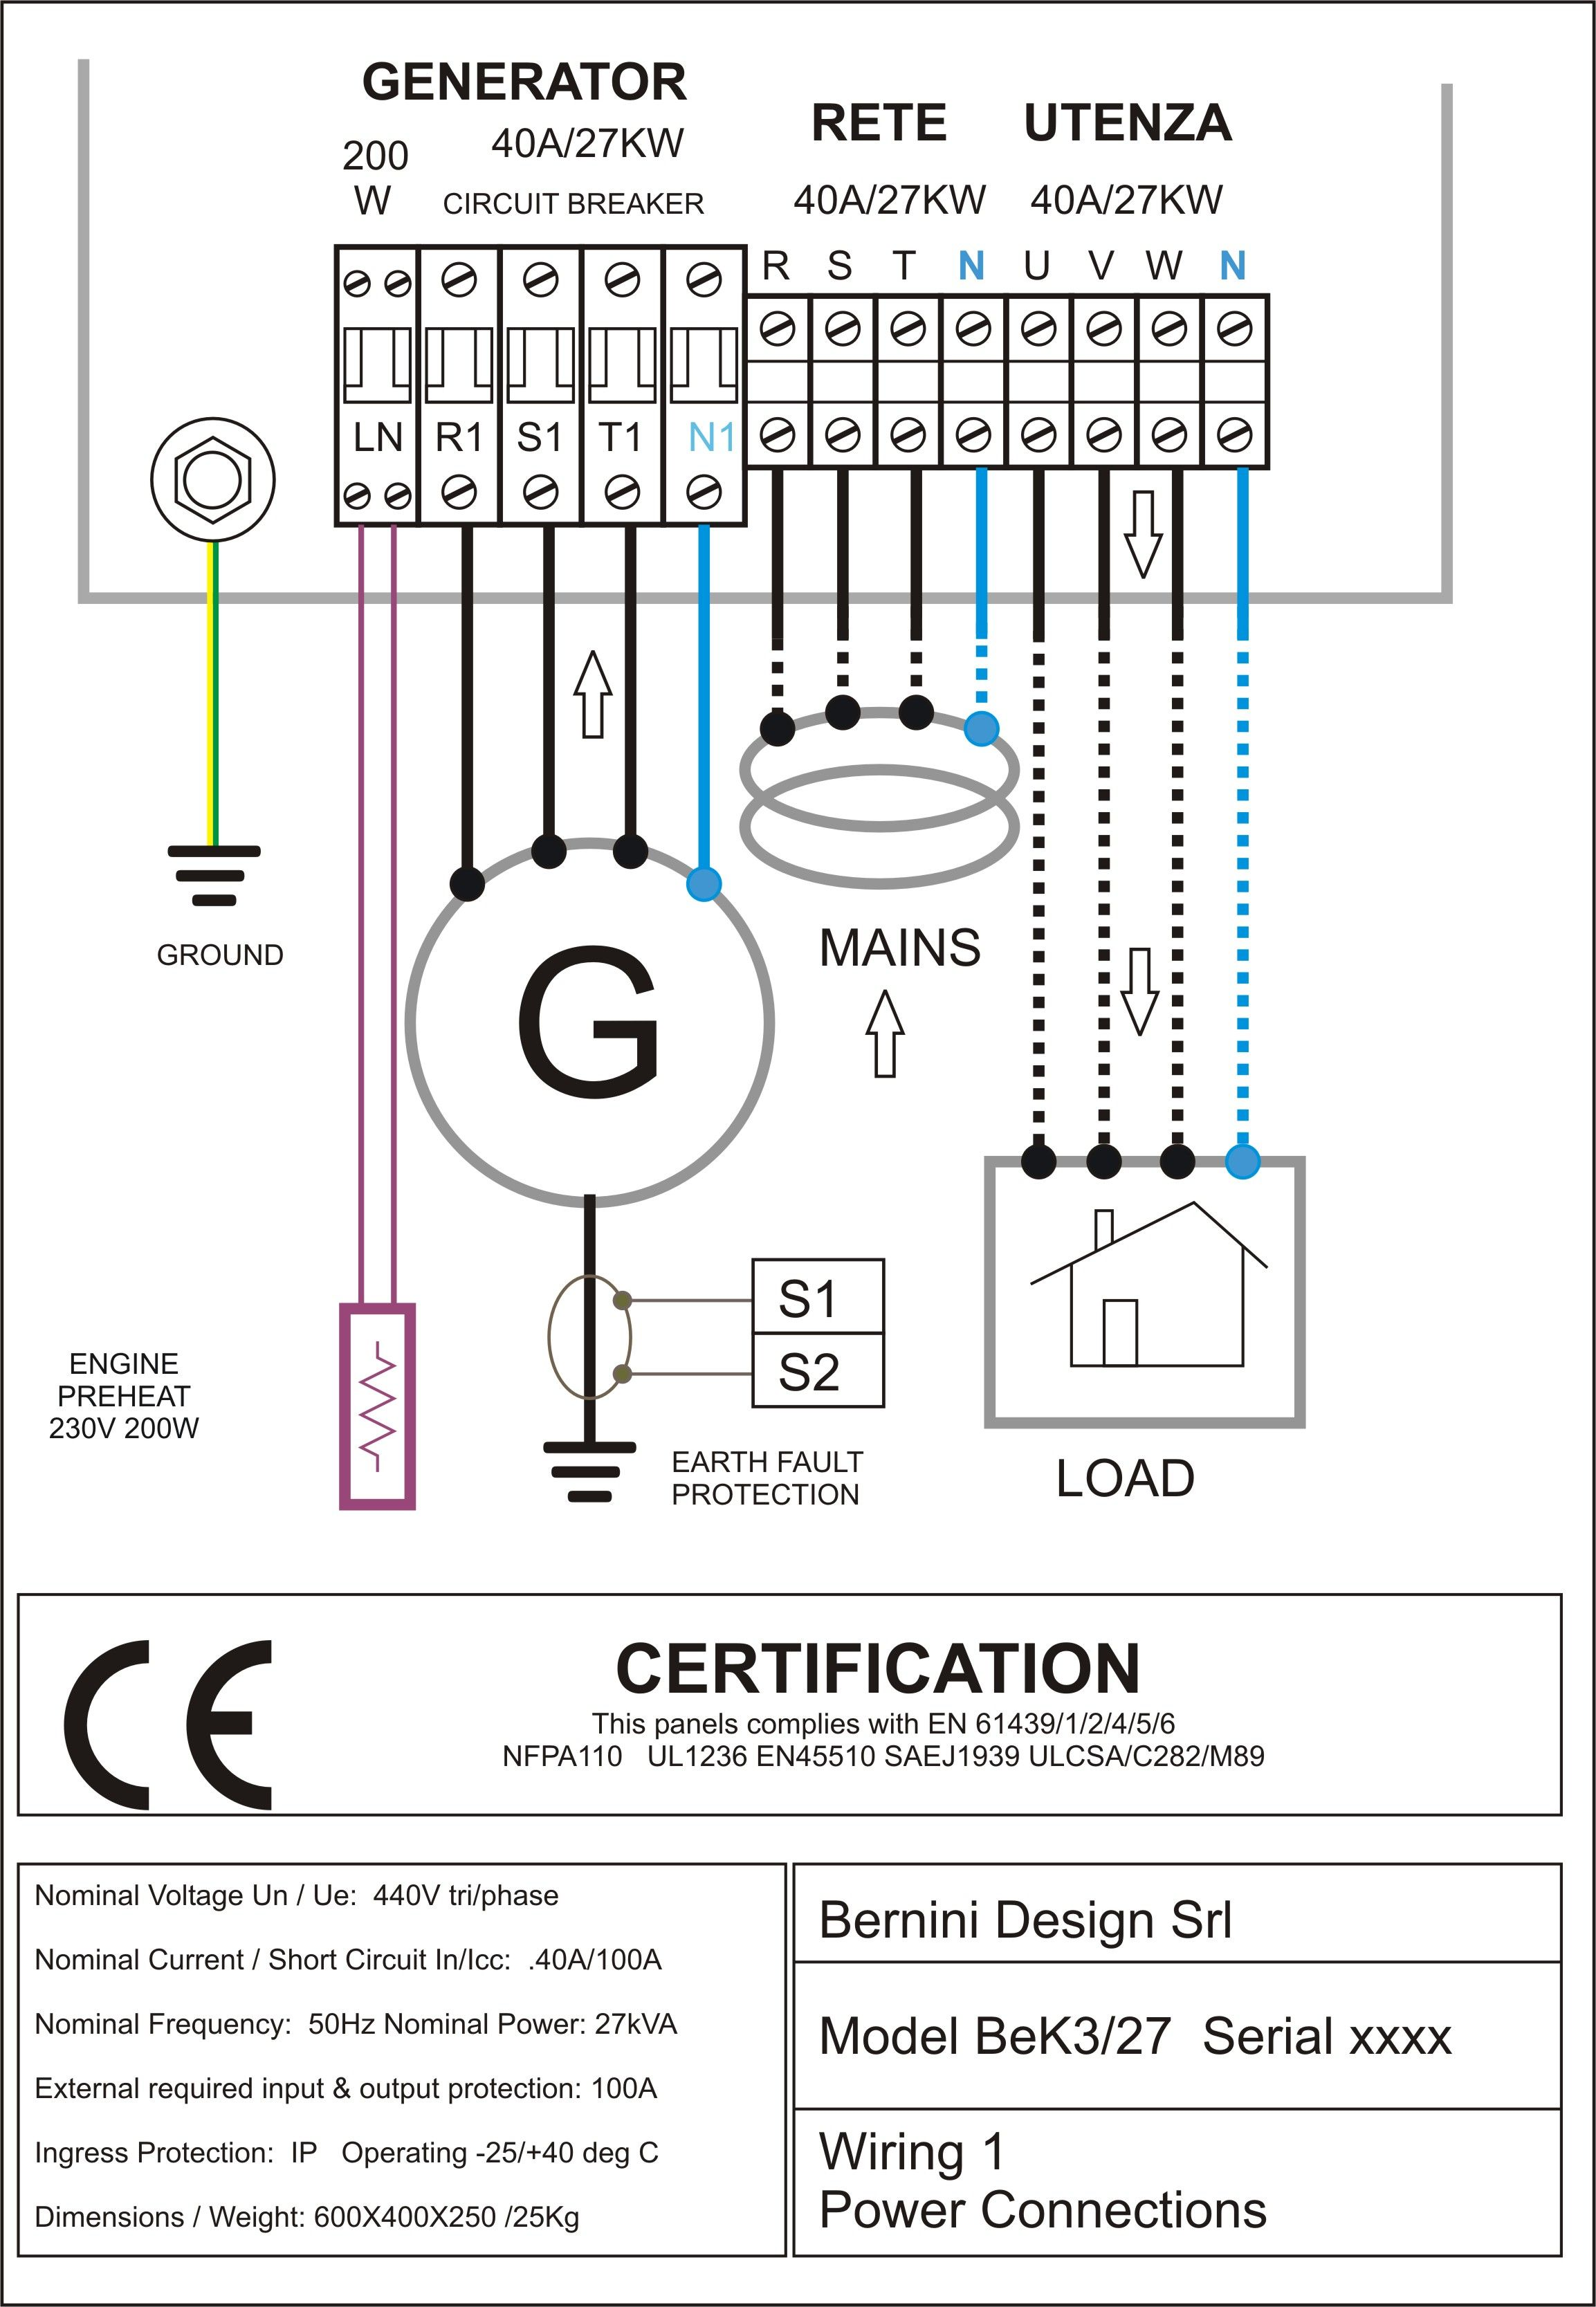 e789bca93f9142d48250ddc66668a81d diesel generator control panel wiring diagram ac connections gr  at bayanpartner.co